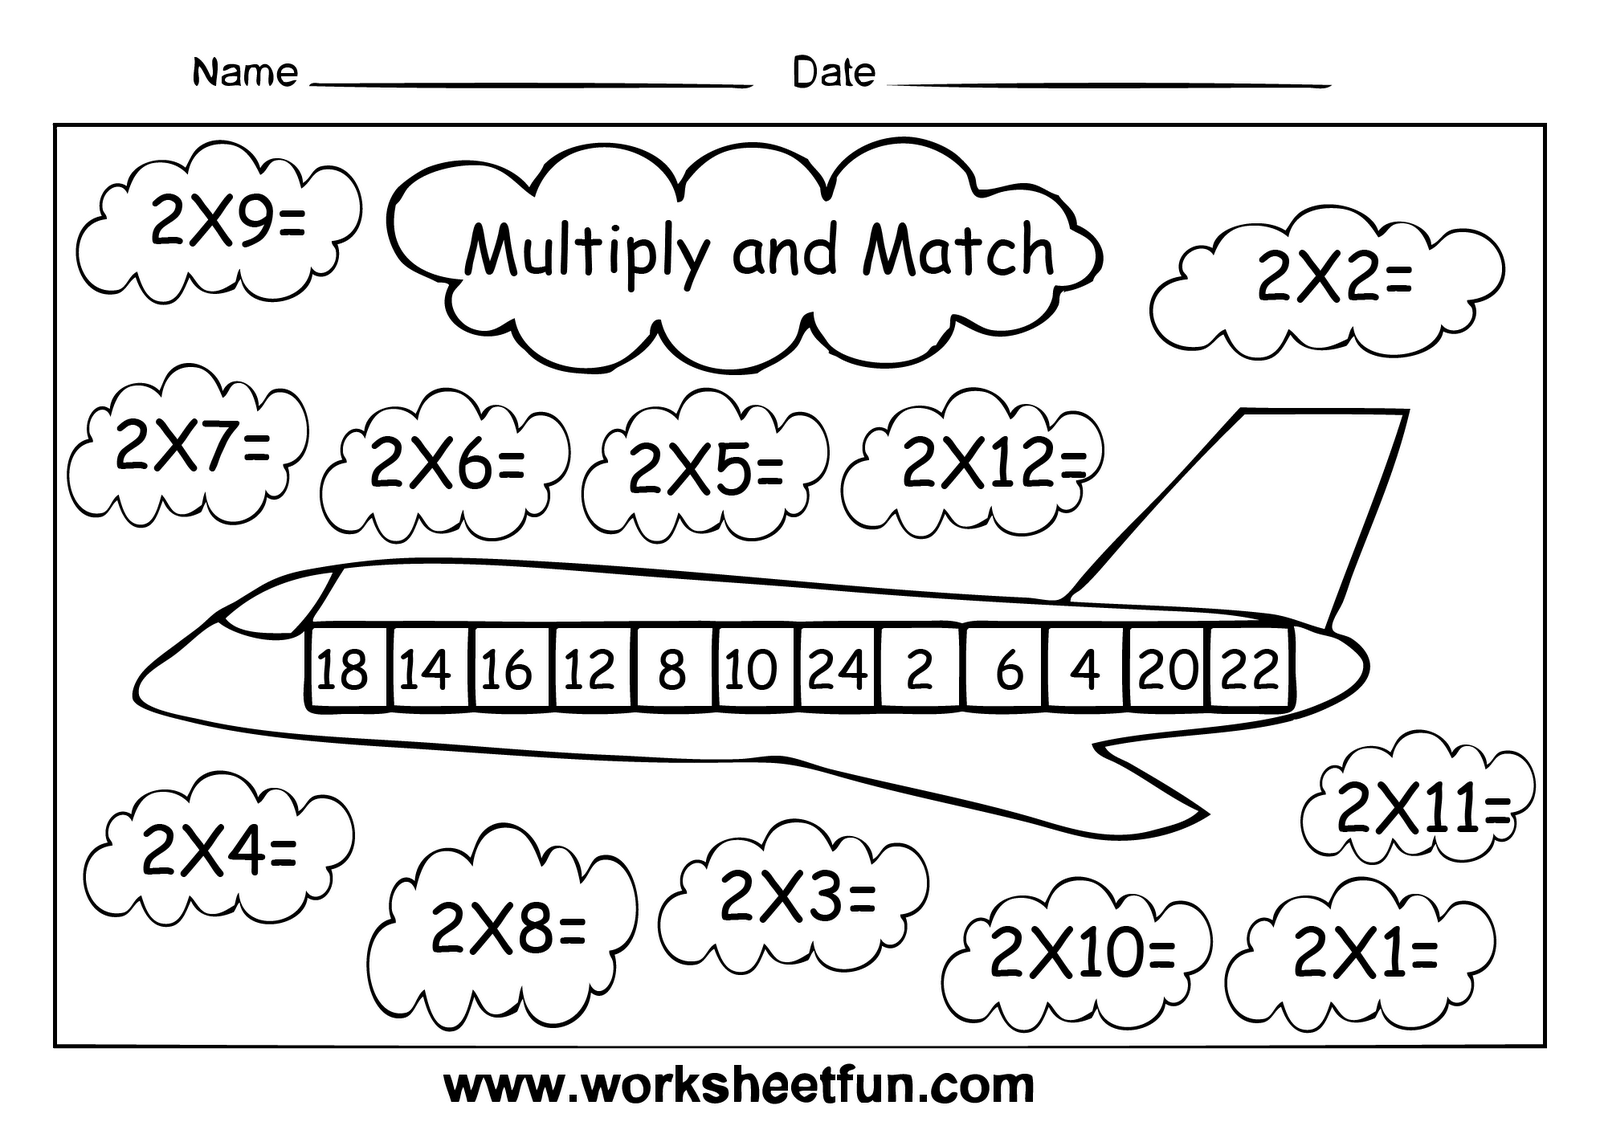 math worksheet : arab unity school  grade 1 d  blog multiplication worksheet : 5s Multiplication Worksheet